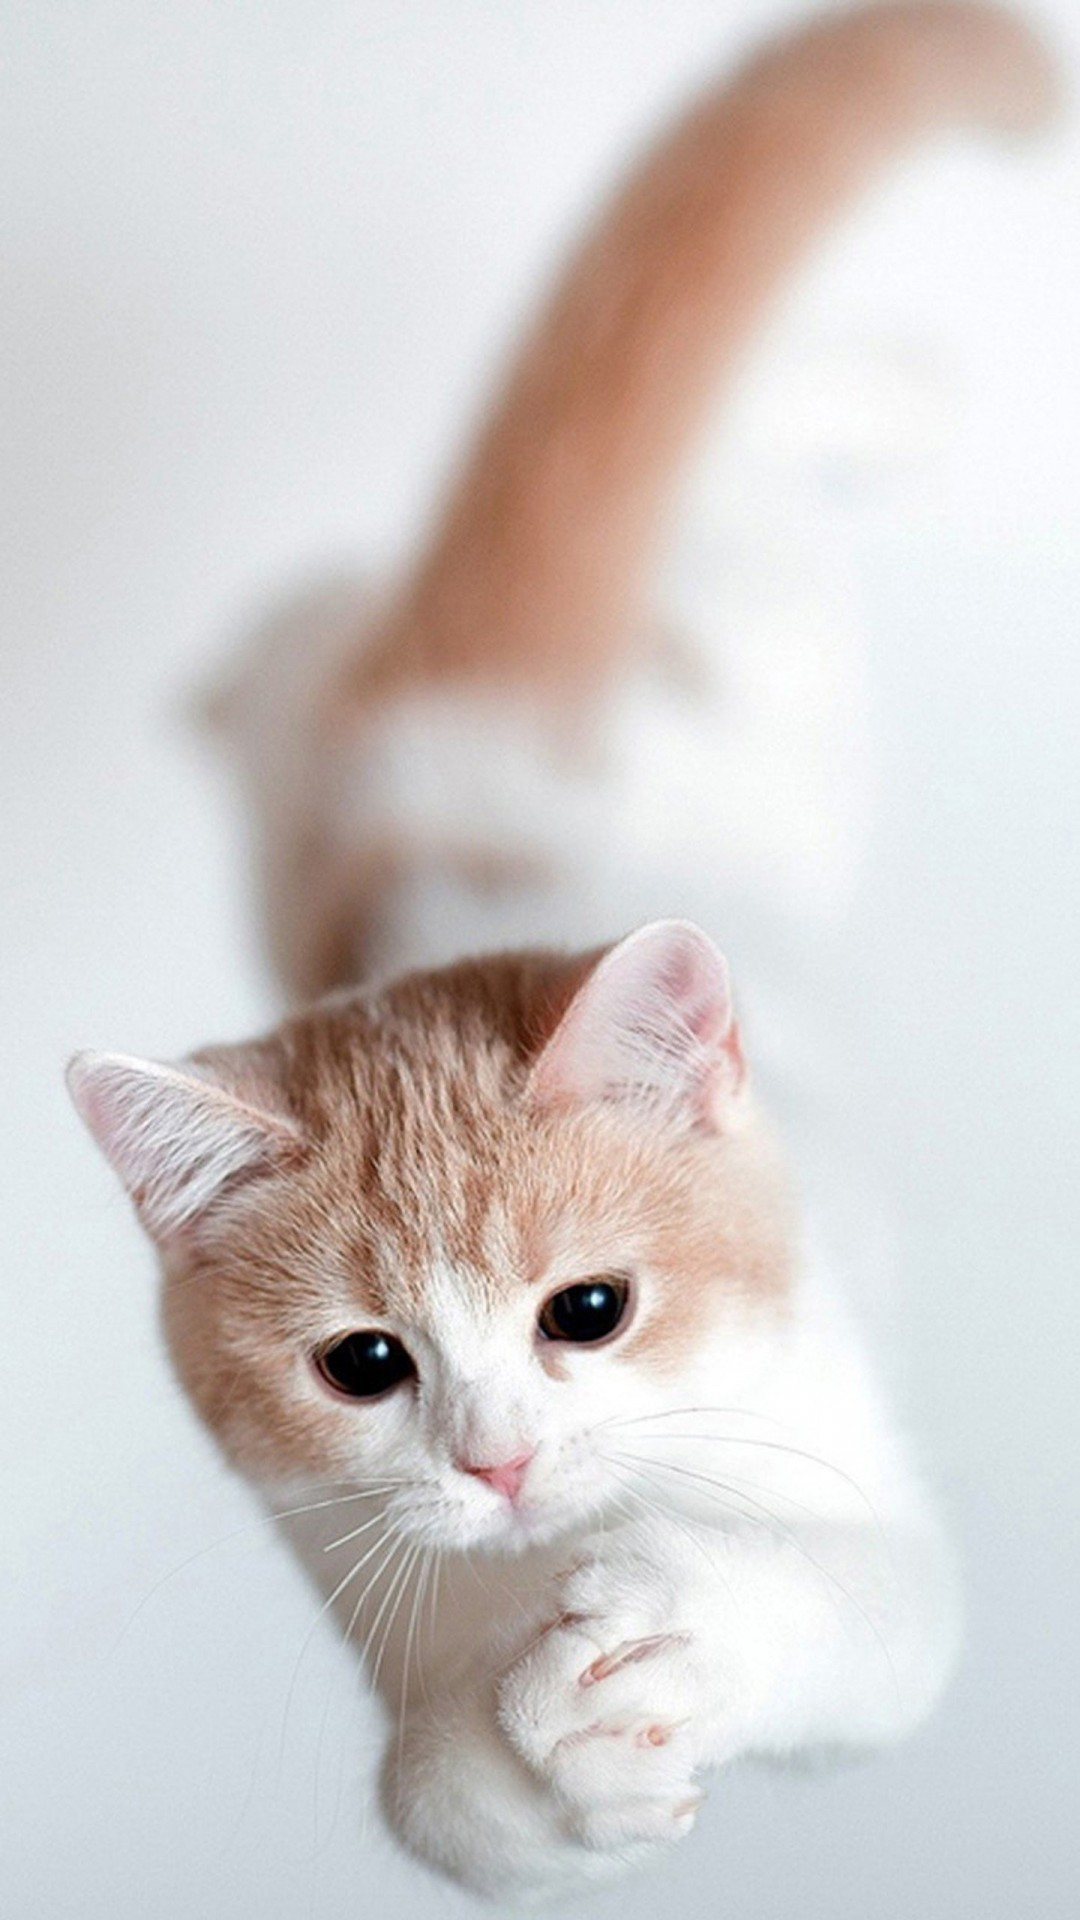 Wallpaper iphone cute cat - Two Cartoon Kitten